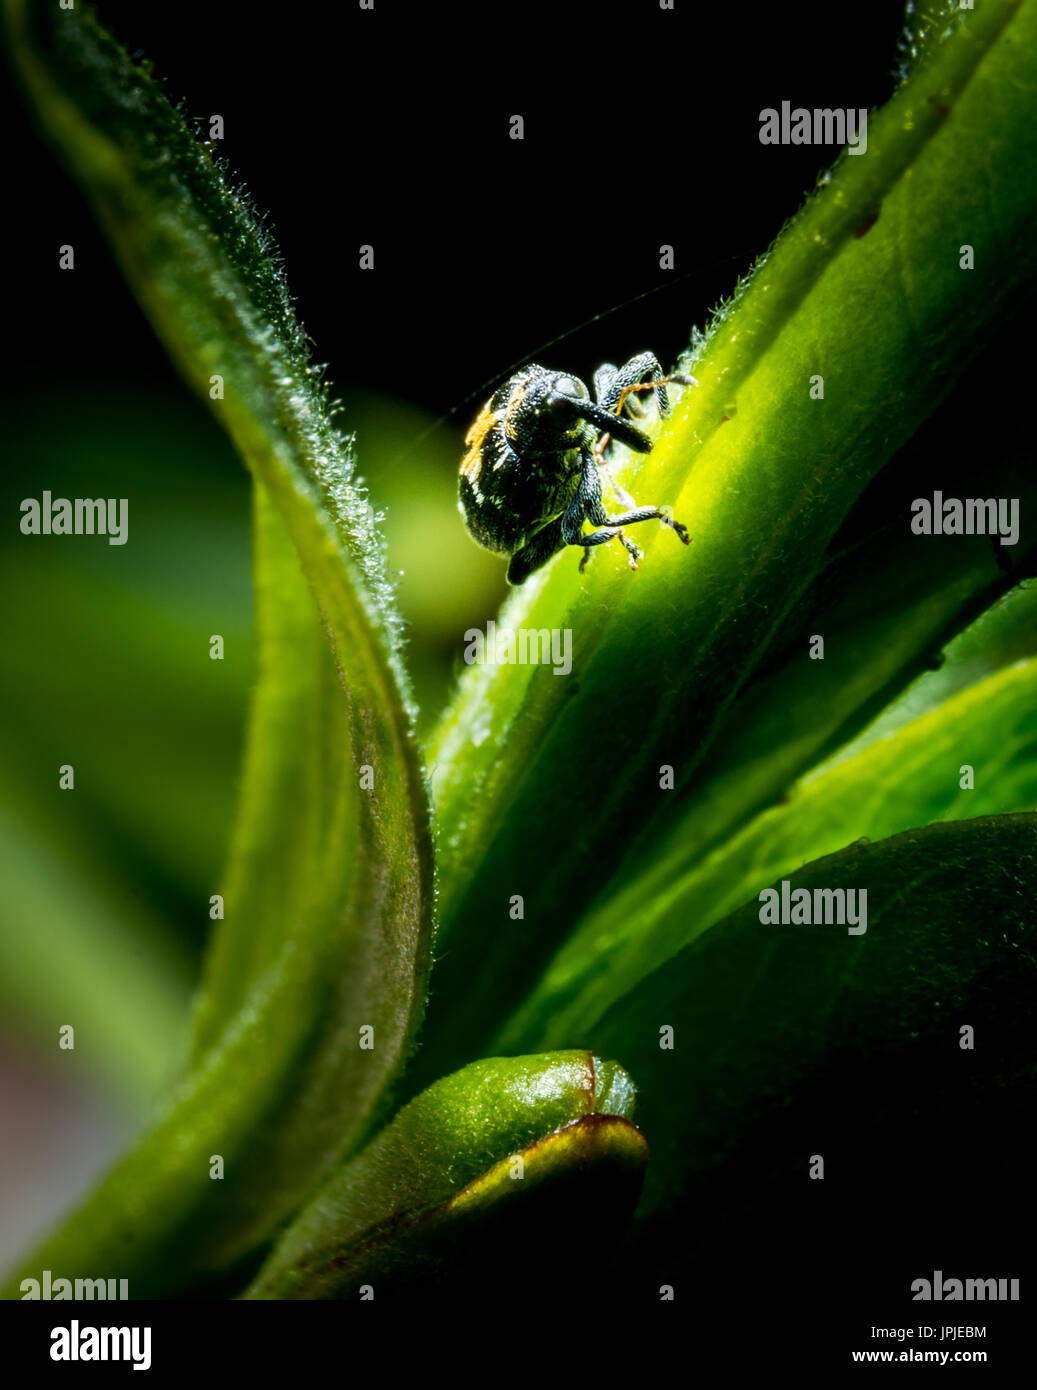 Litlle bug (Ceutorhynchus obstrictuson) on green grass in forest macro photo - Stock Image